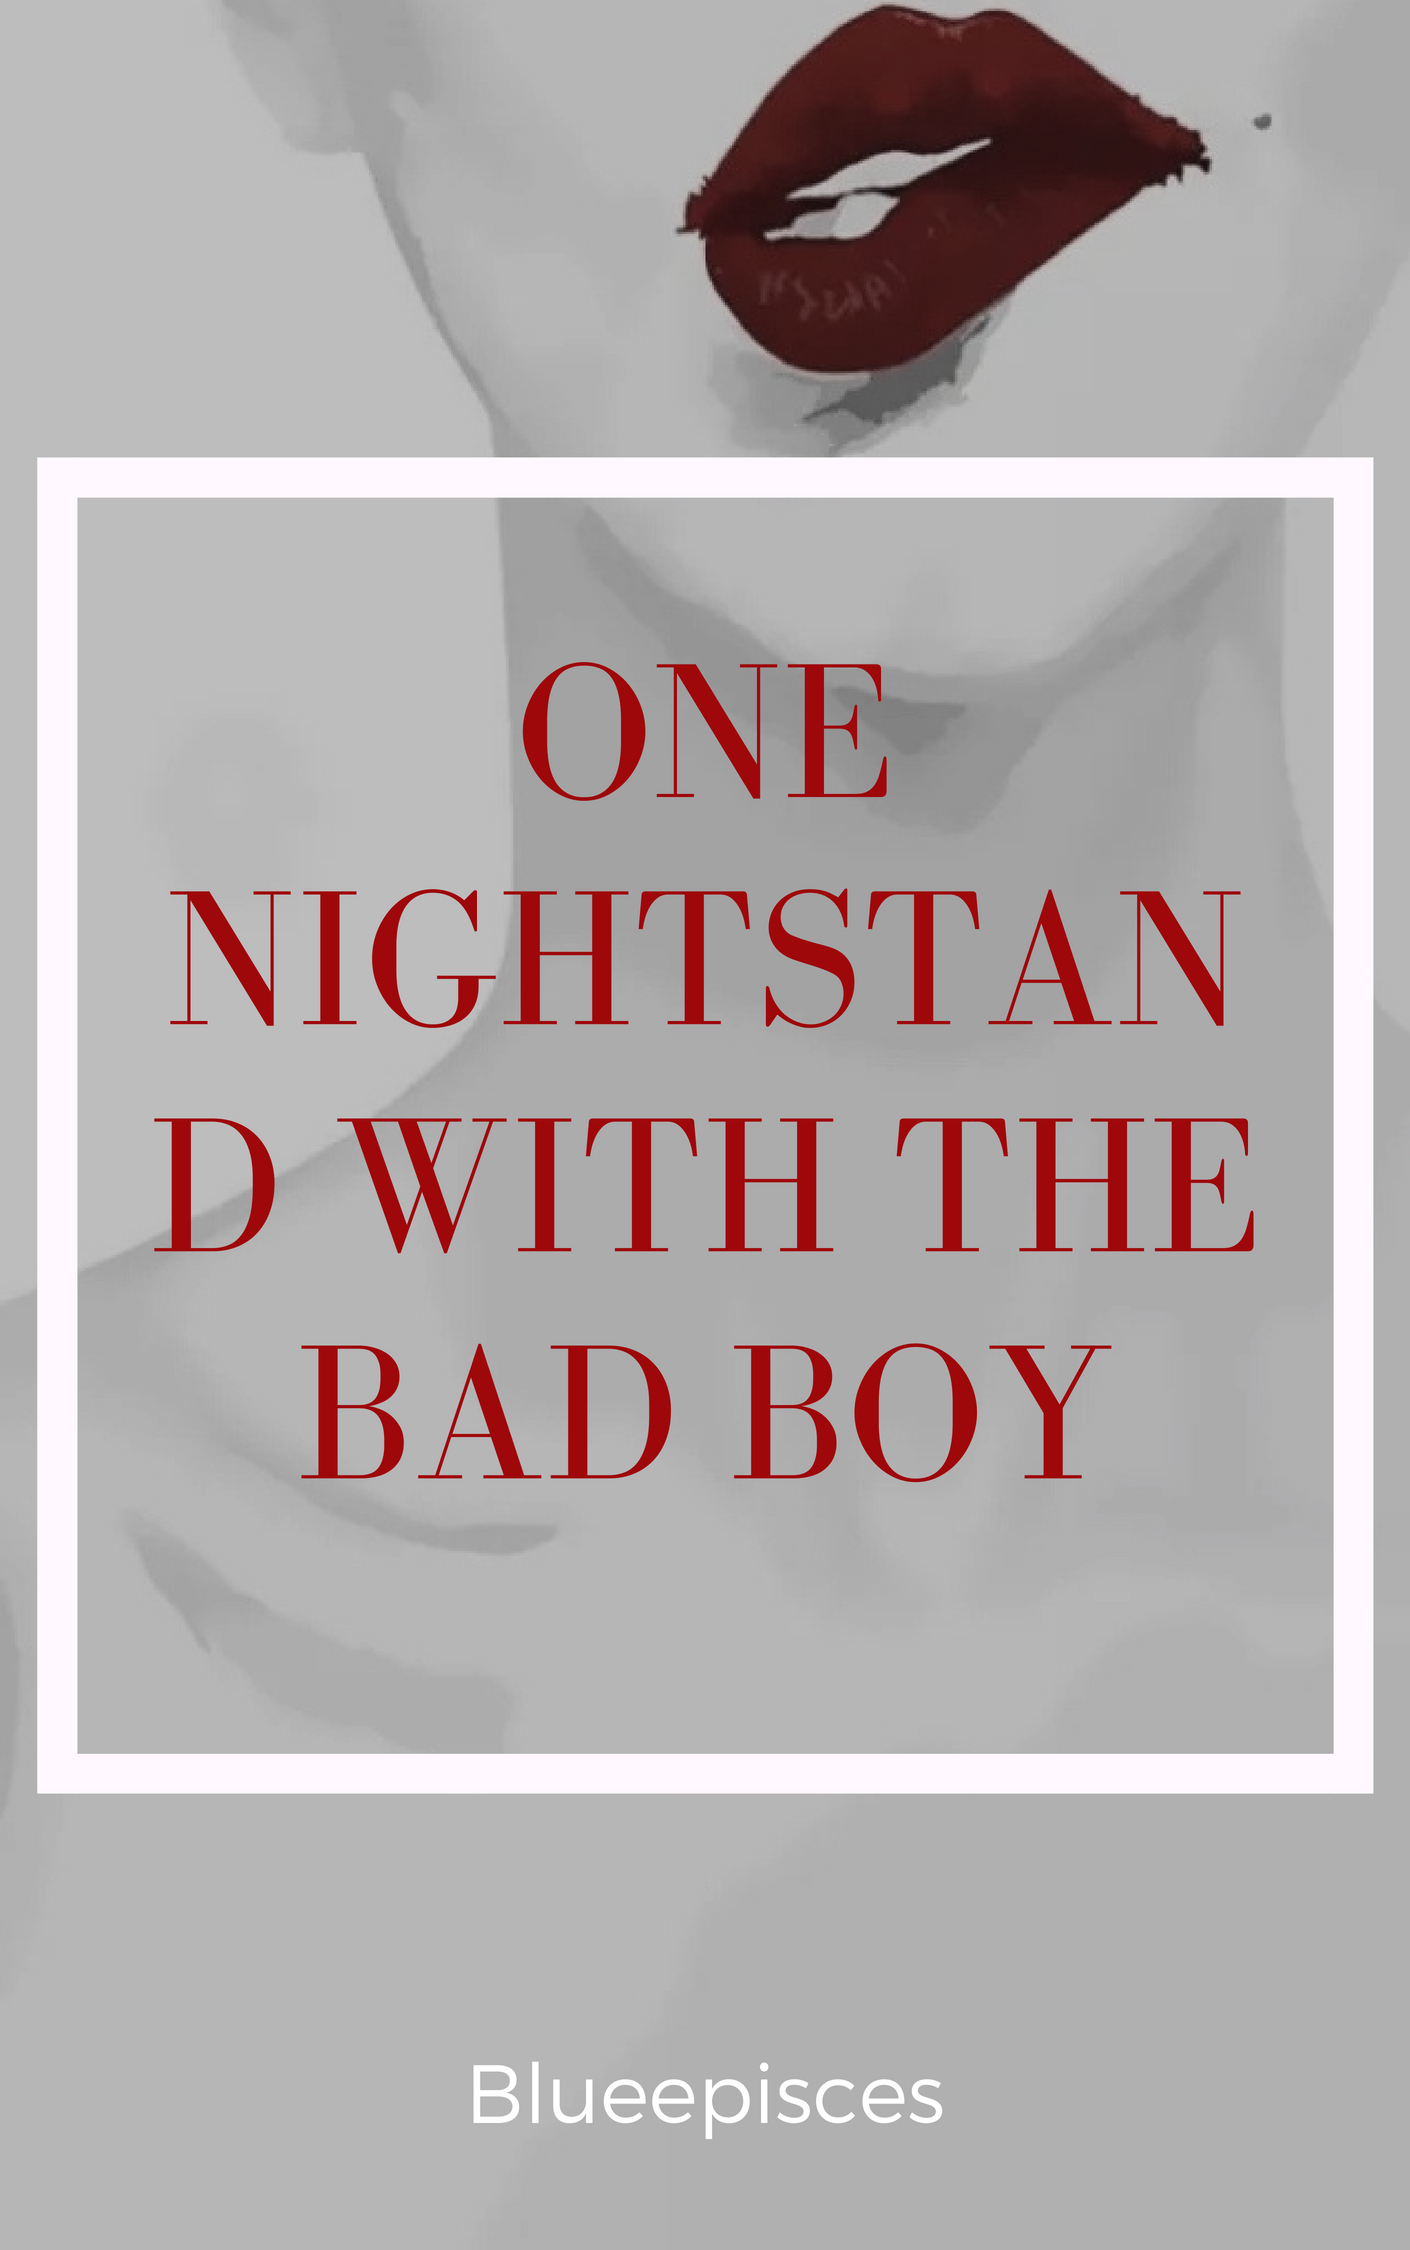 One nightstand with the Bad boy